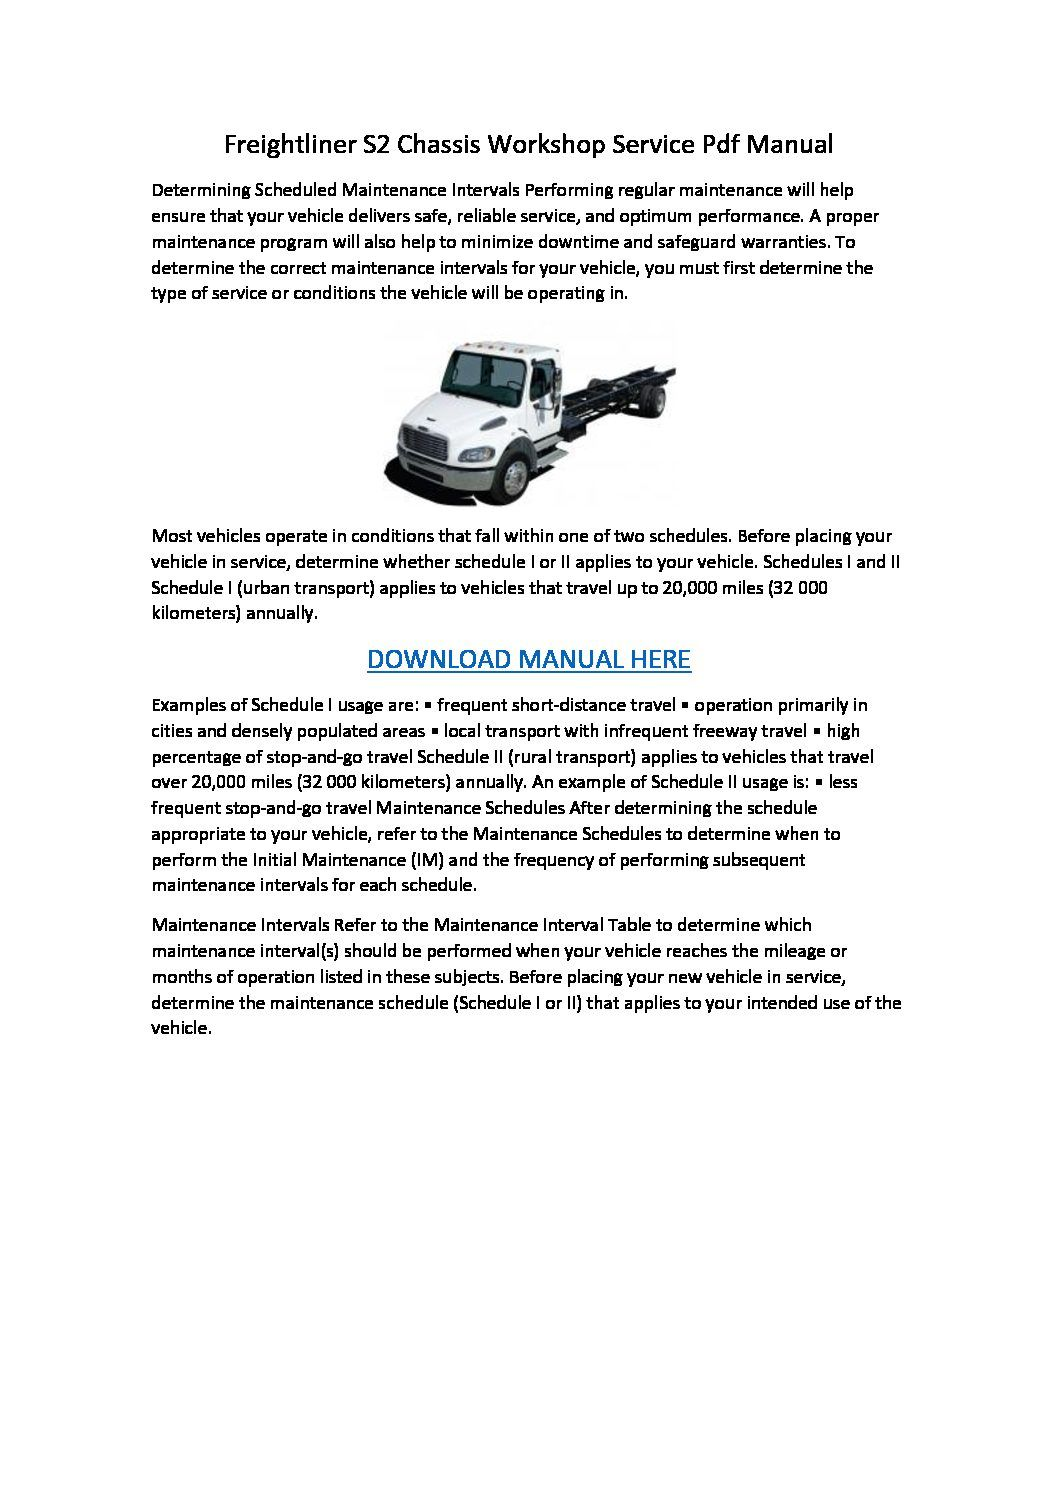 Freightliner S2 Chassis Workshop Service Pdf Manual